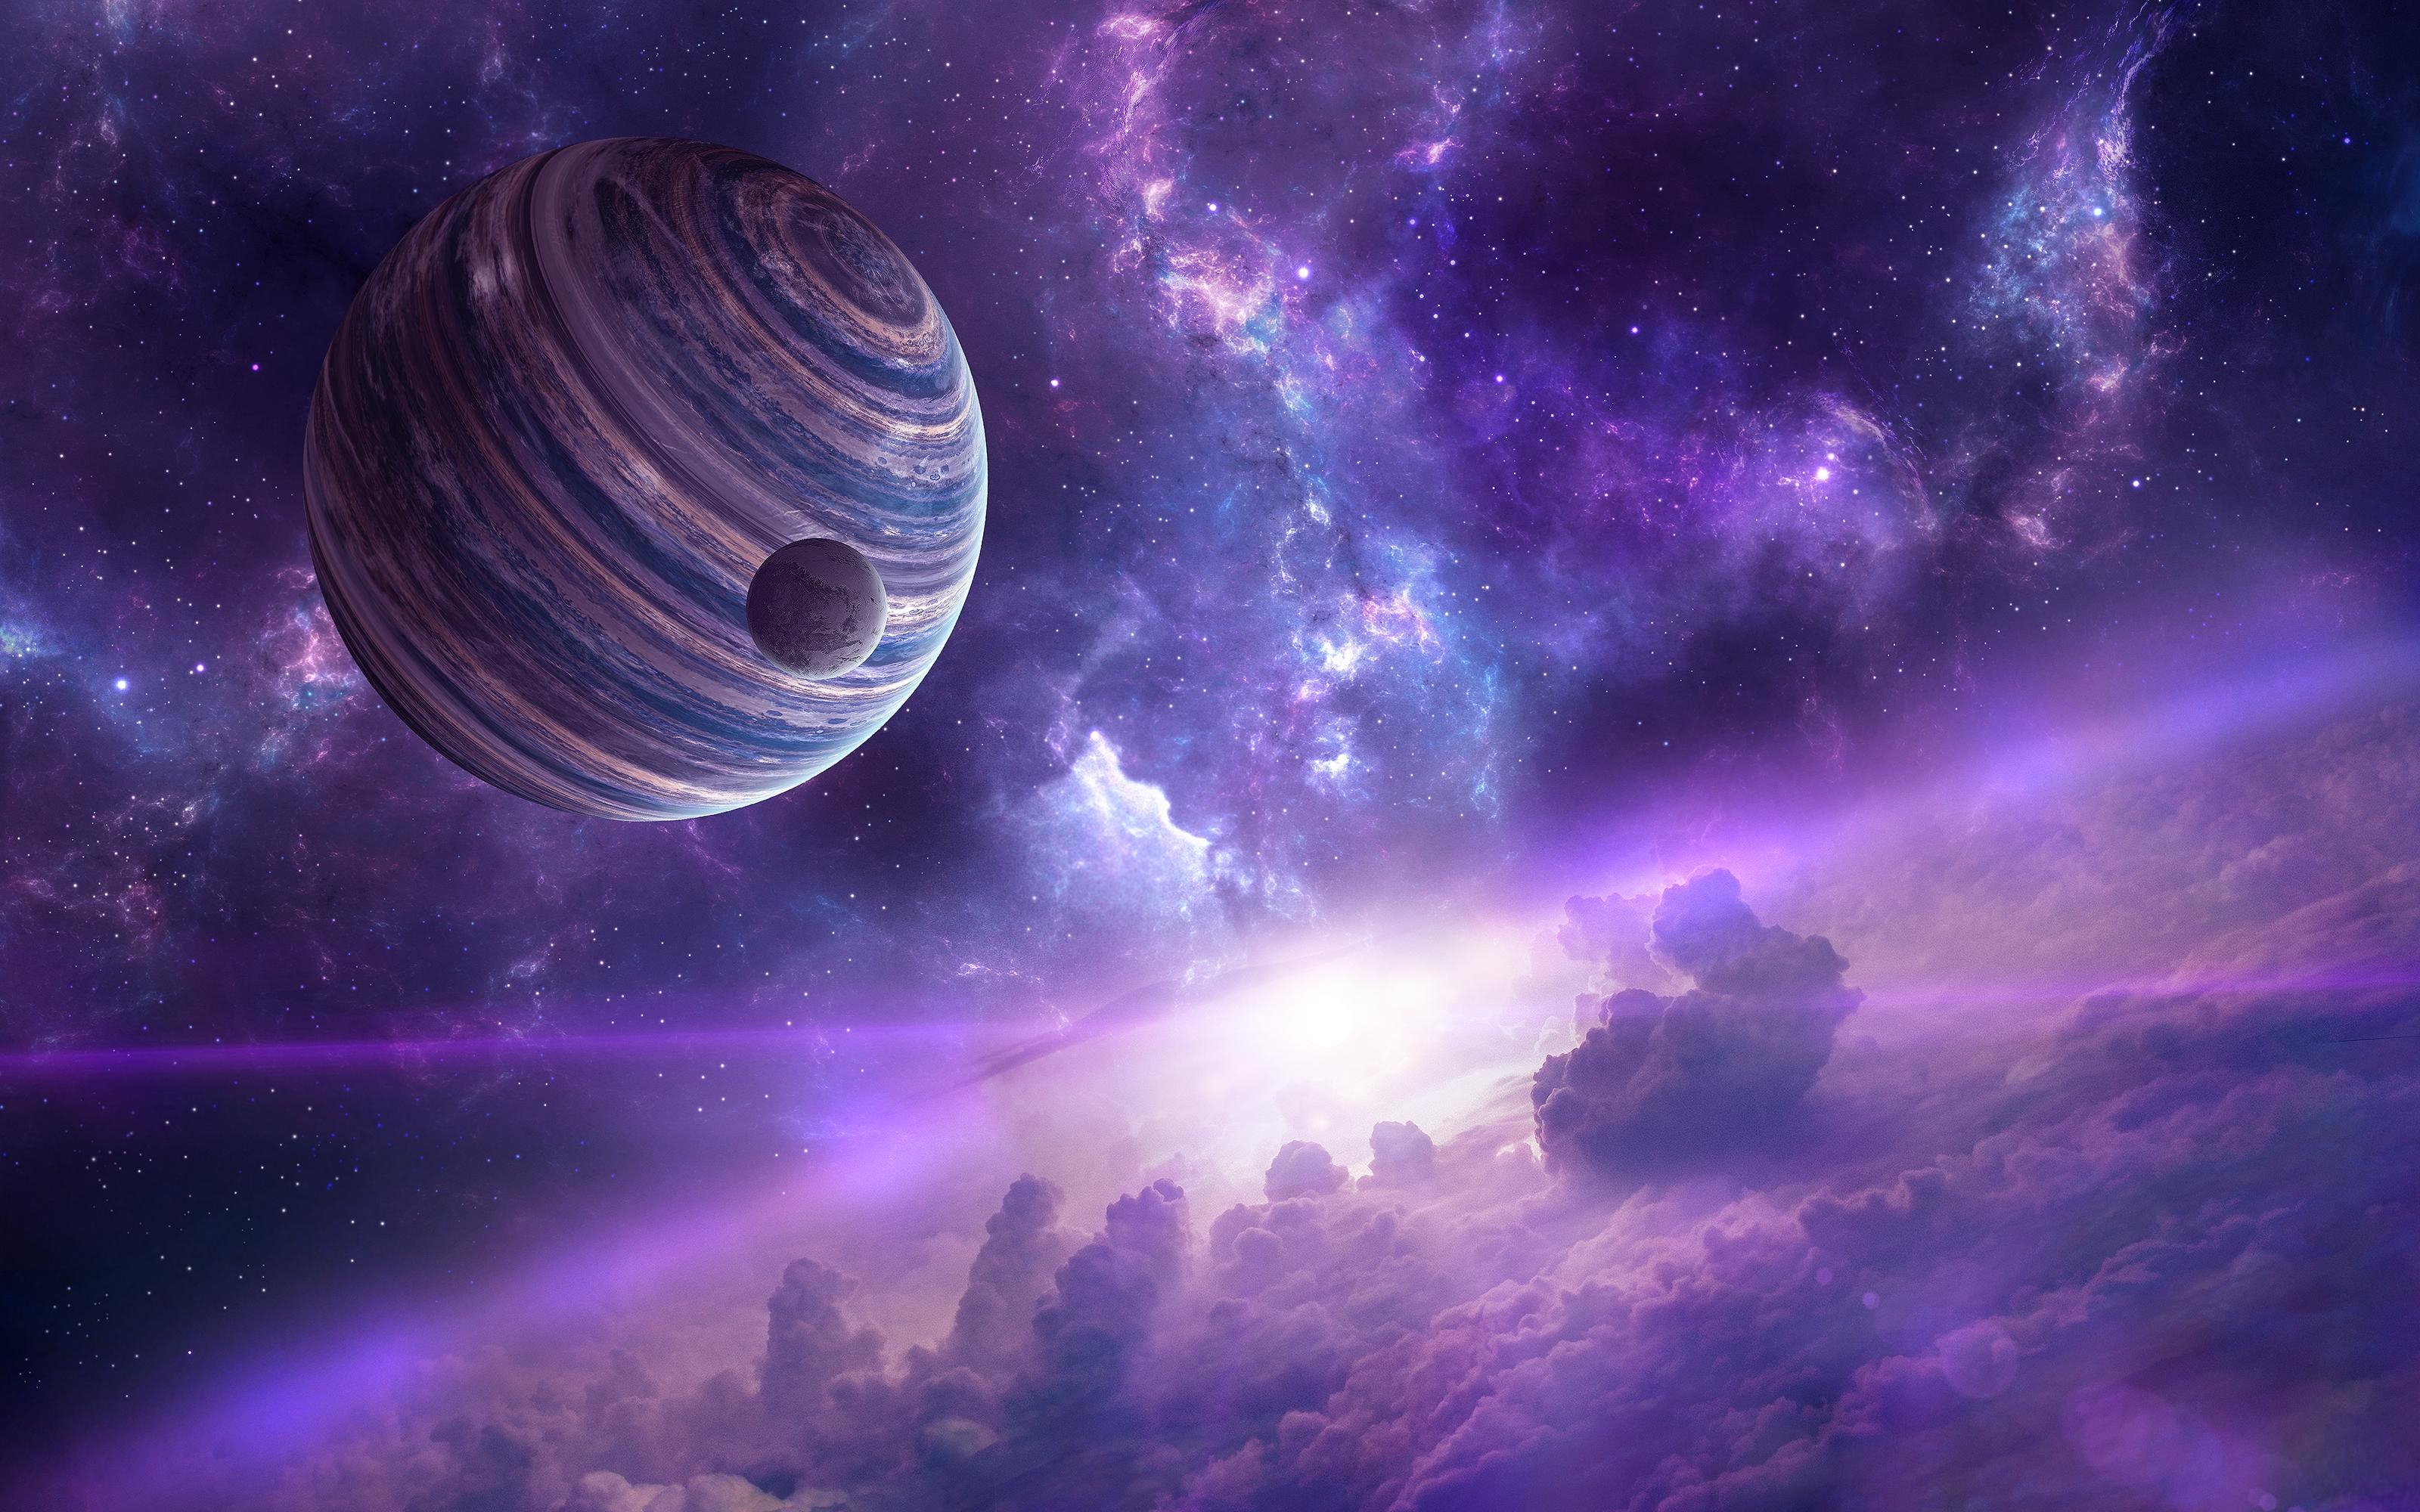 7 Software To Capture And Extract Images From A Video Easily Free pictures of the planets